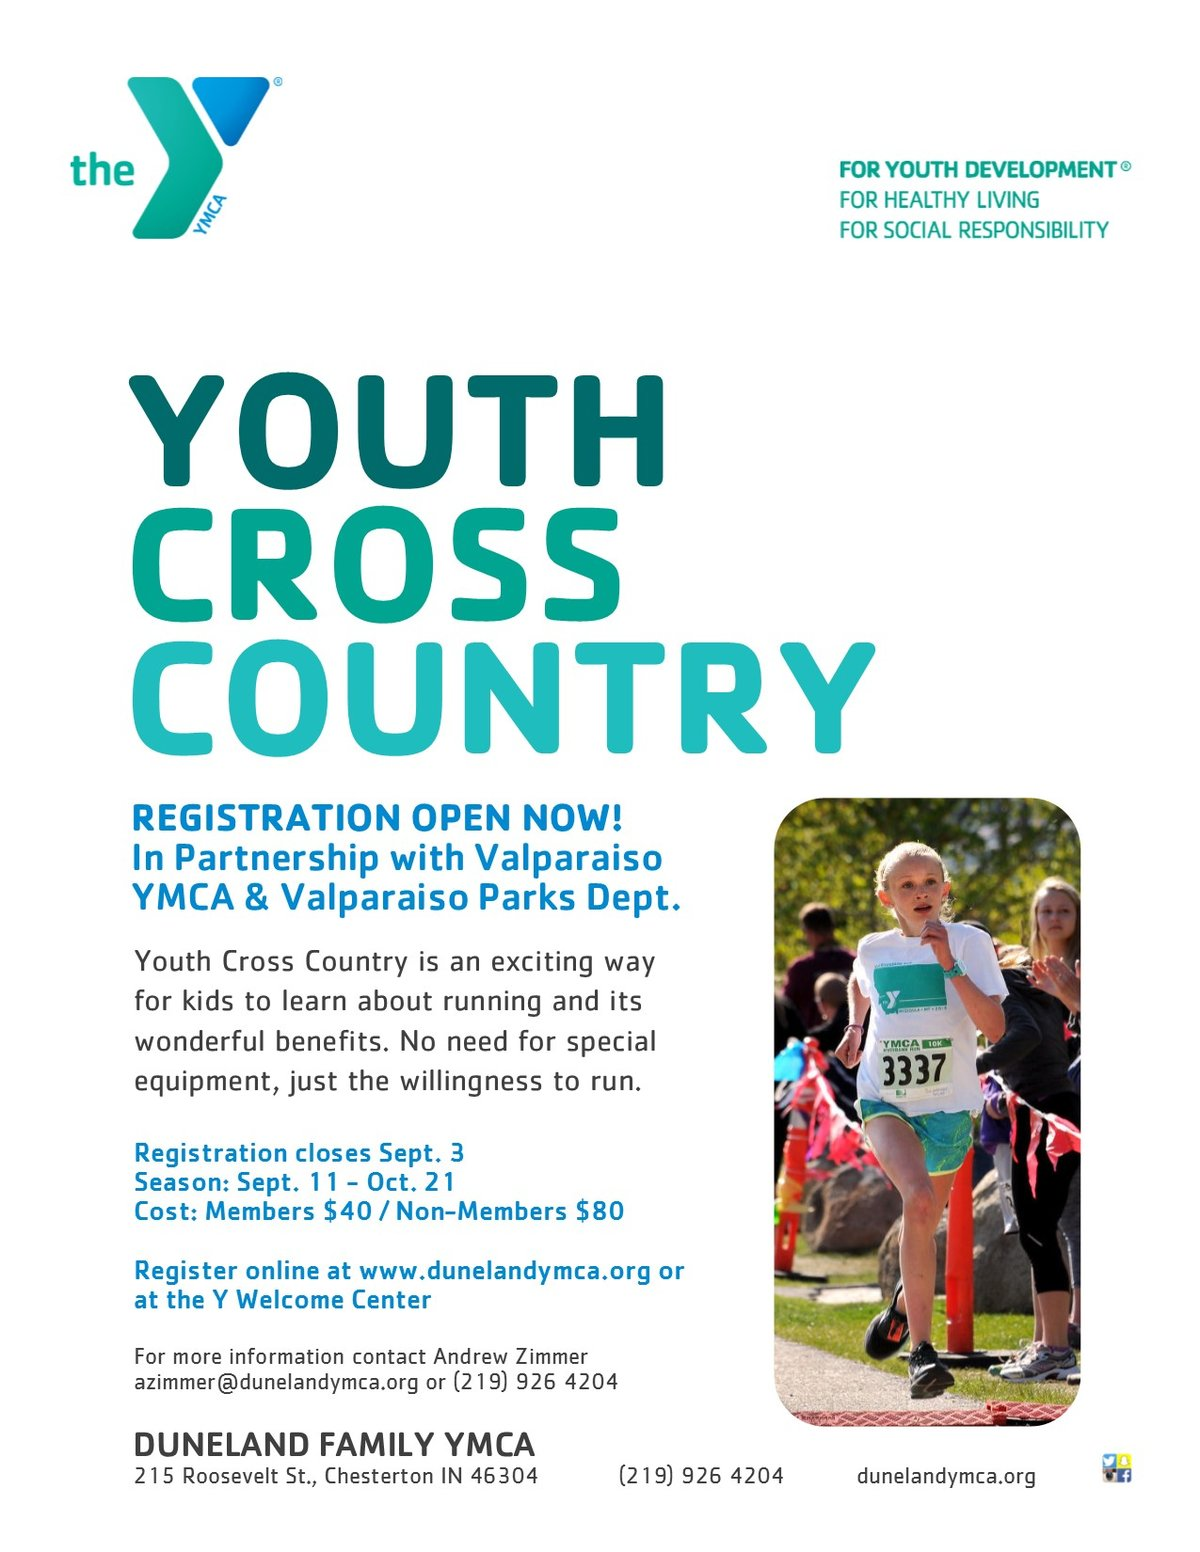 YOUTH_CROSS_COUNTRY_STARTS_SEPT__11-1---2017-08-18_20_51_30